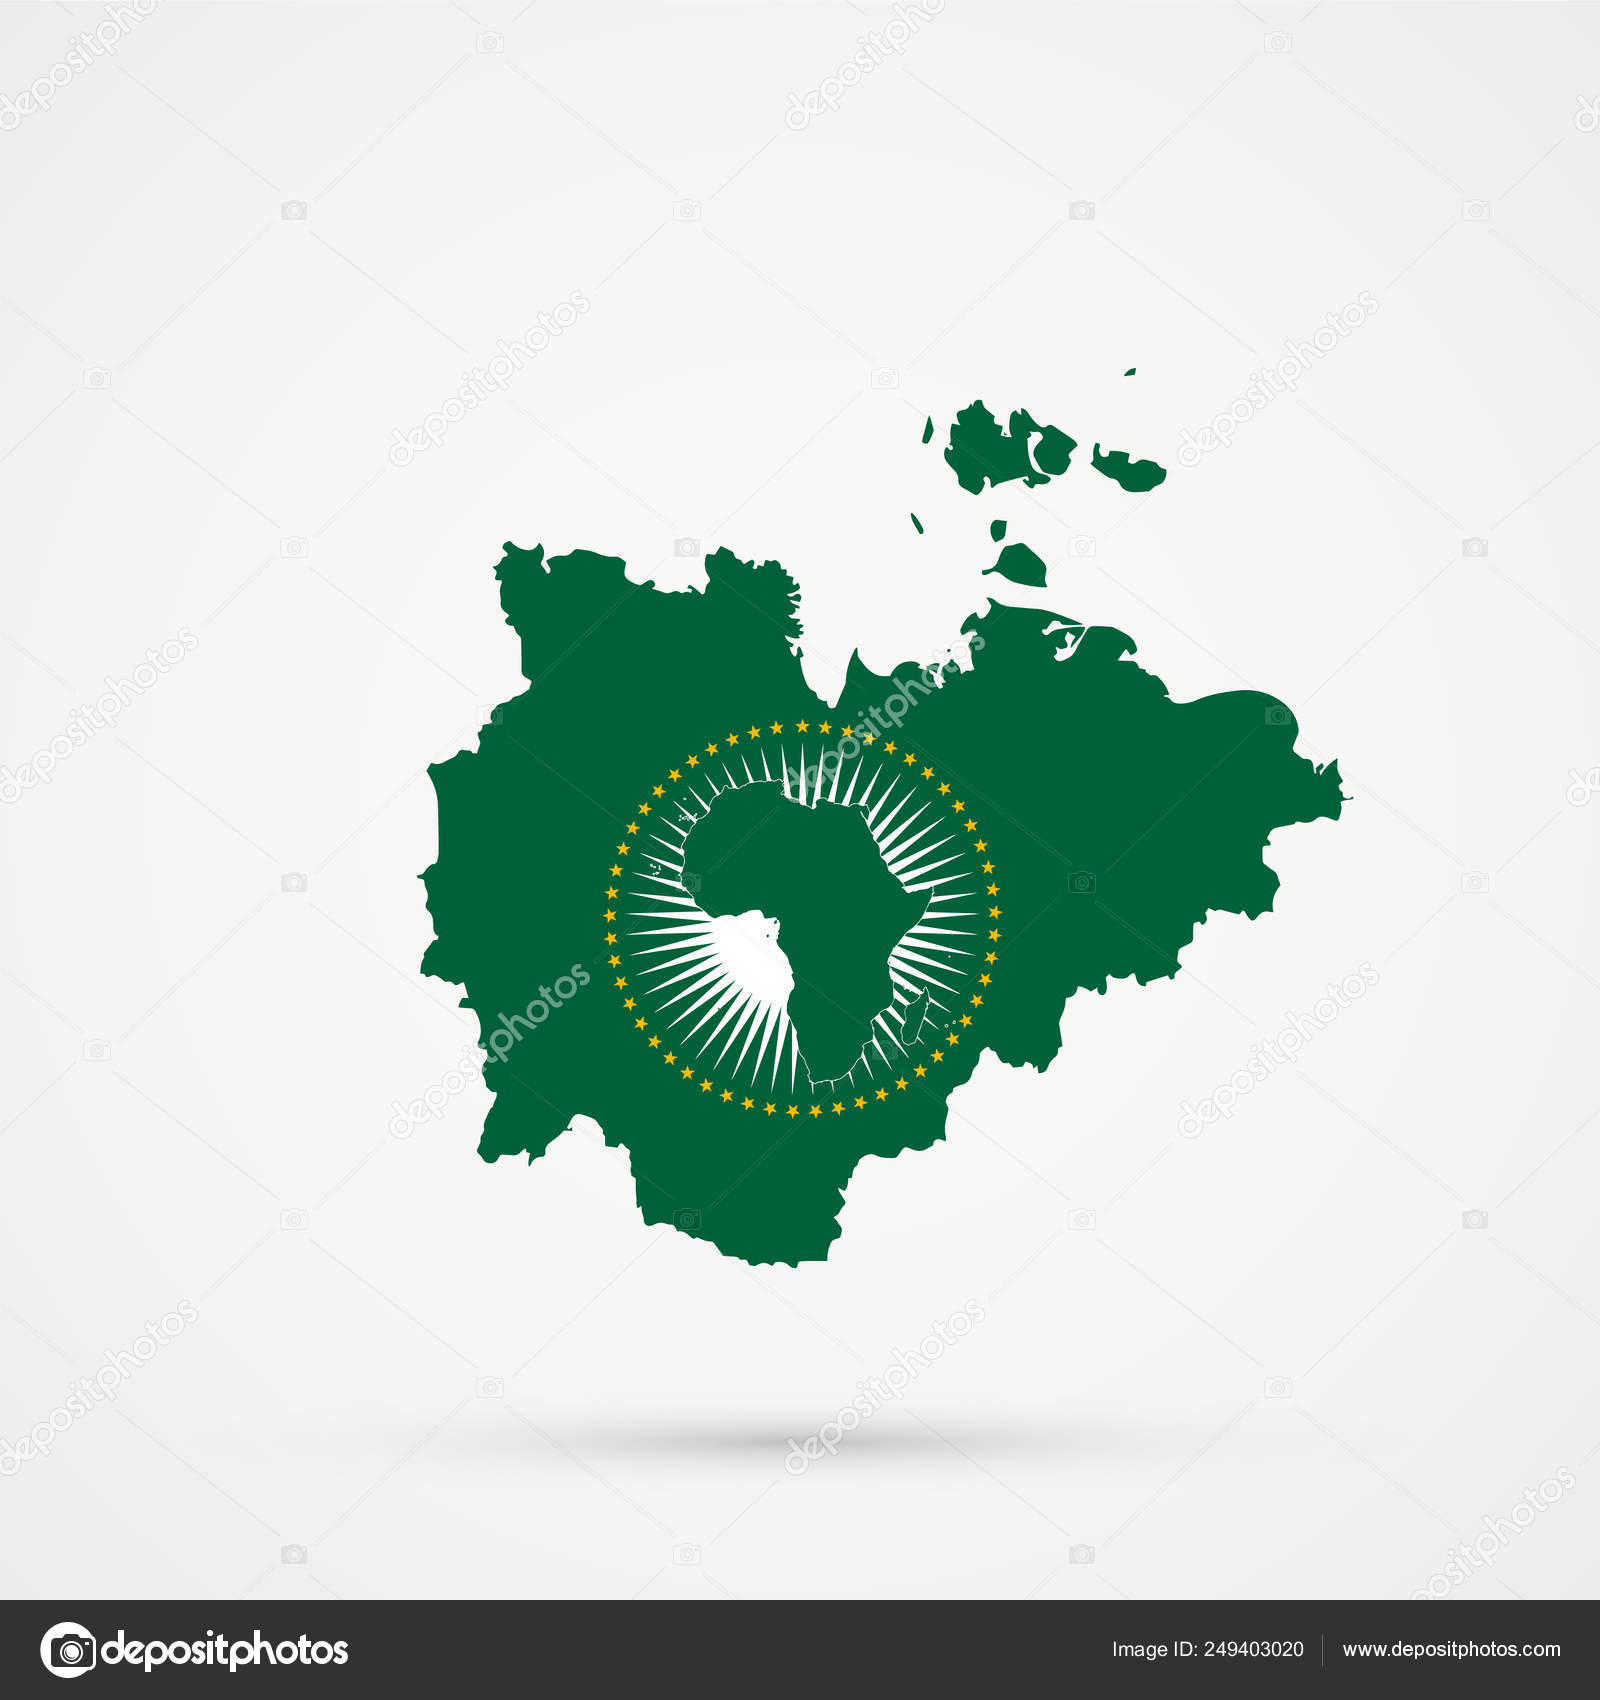 African Union Map.Sakha Republic Map In African Union Au Flag Colors Editable